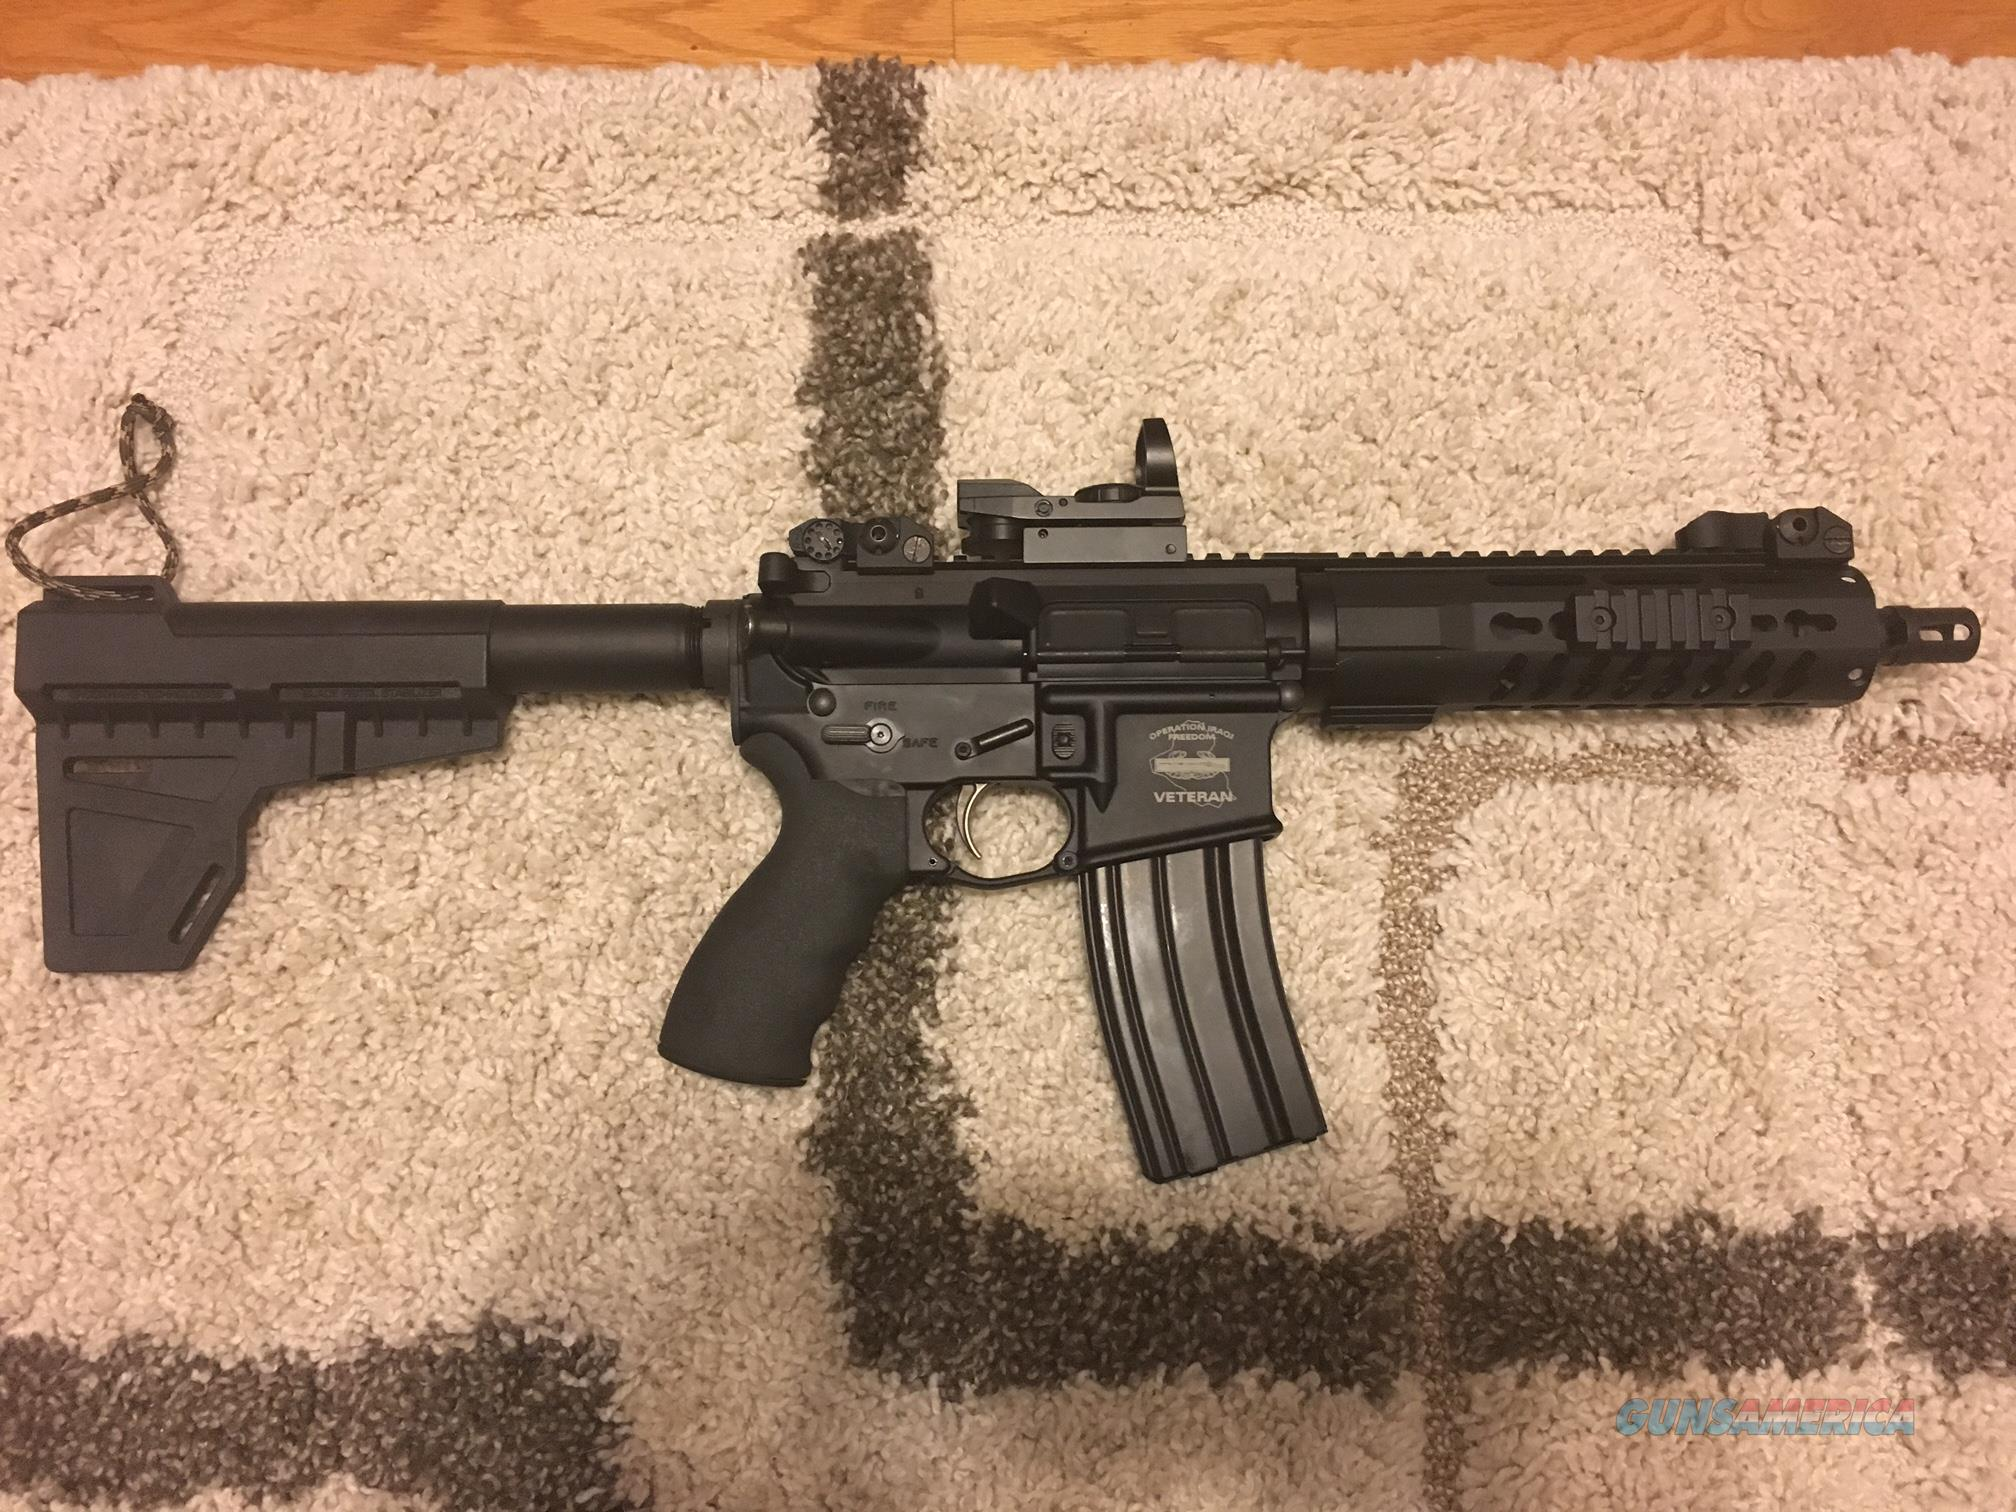 AR15 PISTOL BUILD  Guns > Rifles > AR-15 Rifles - Small Manufacturers > Complete Rifle